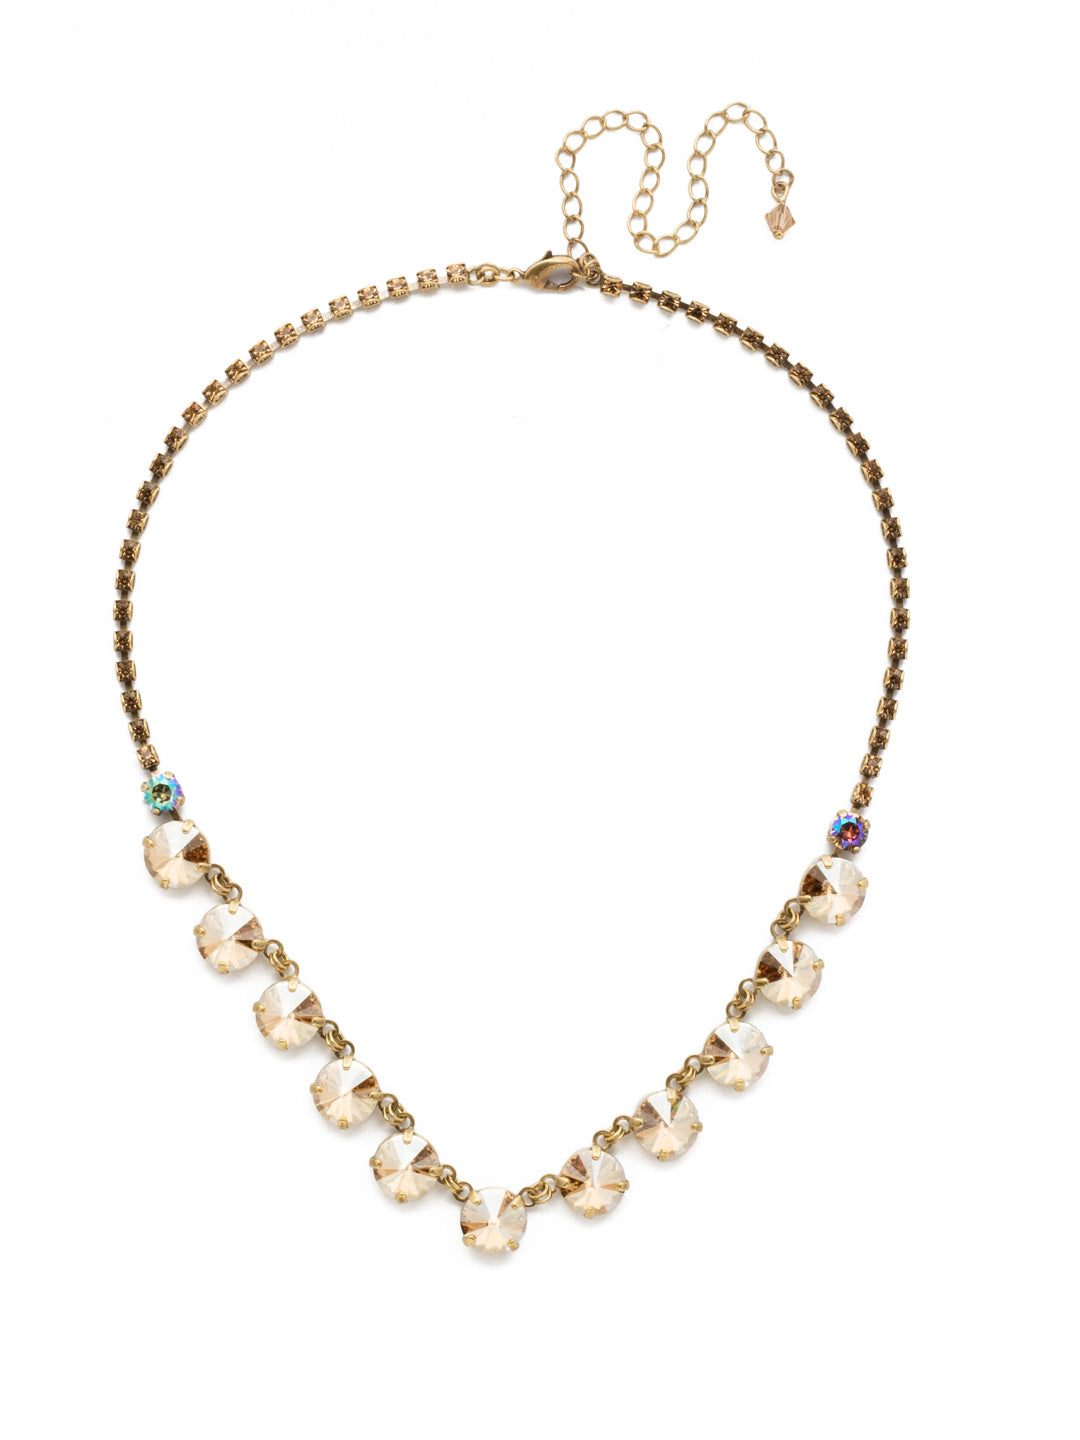 Simply Sophisticated Line Necklace - NDK6AGNT